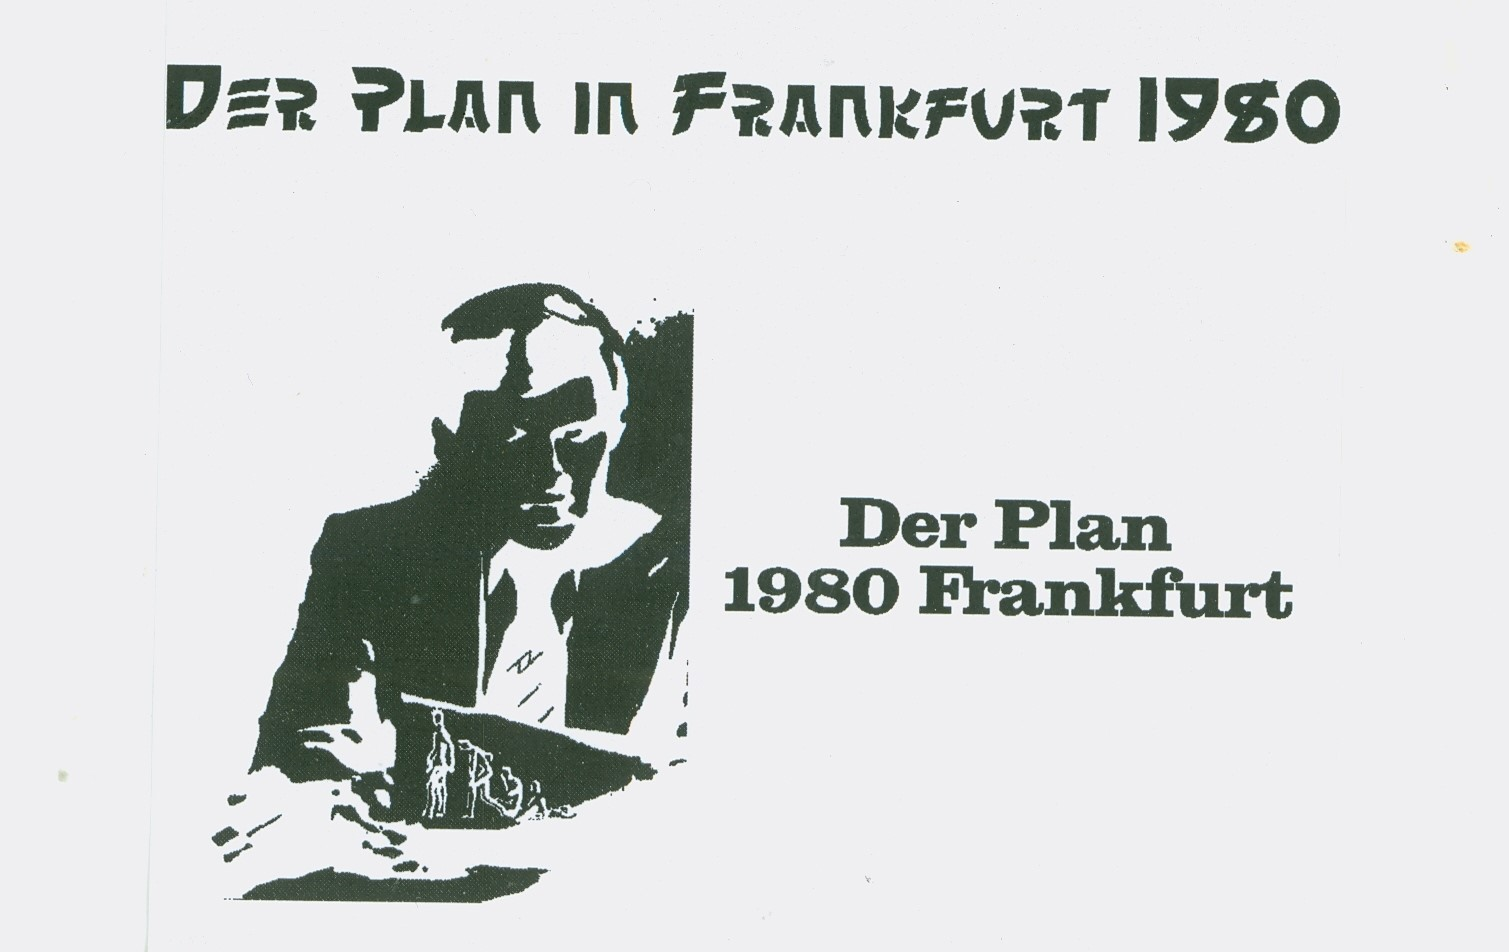 DER PLAN – LIVE IN FRANKFURT 1980 (CASSETTE C-20, SINGLE SIDED, 1980) (MP3 192)